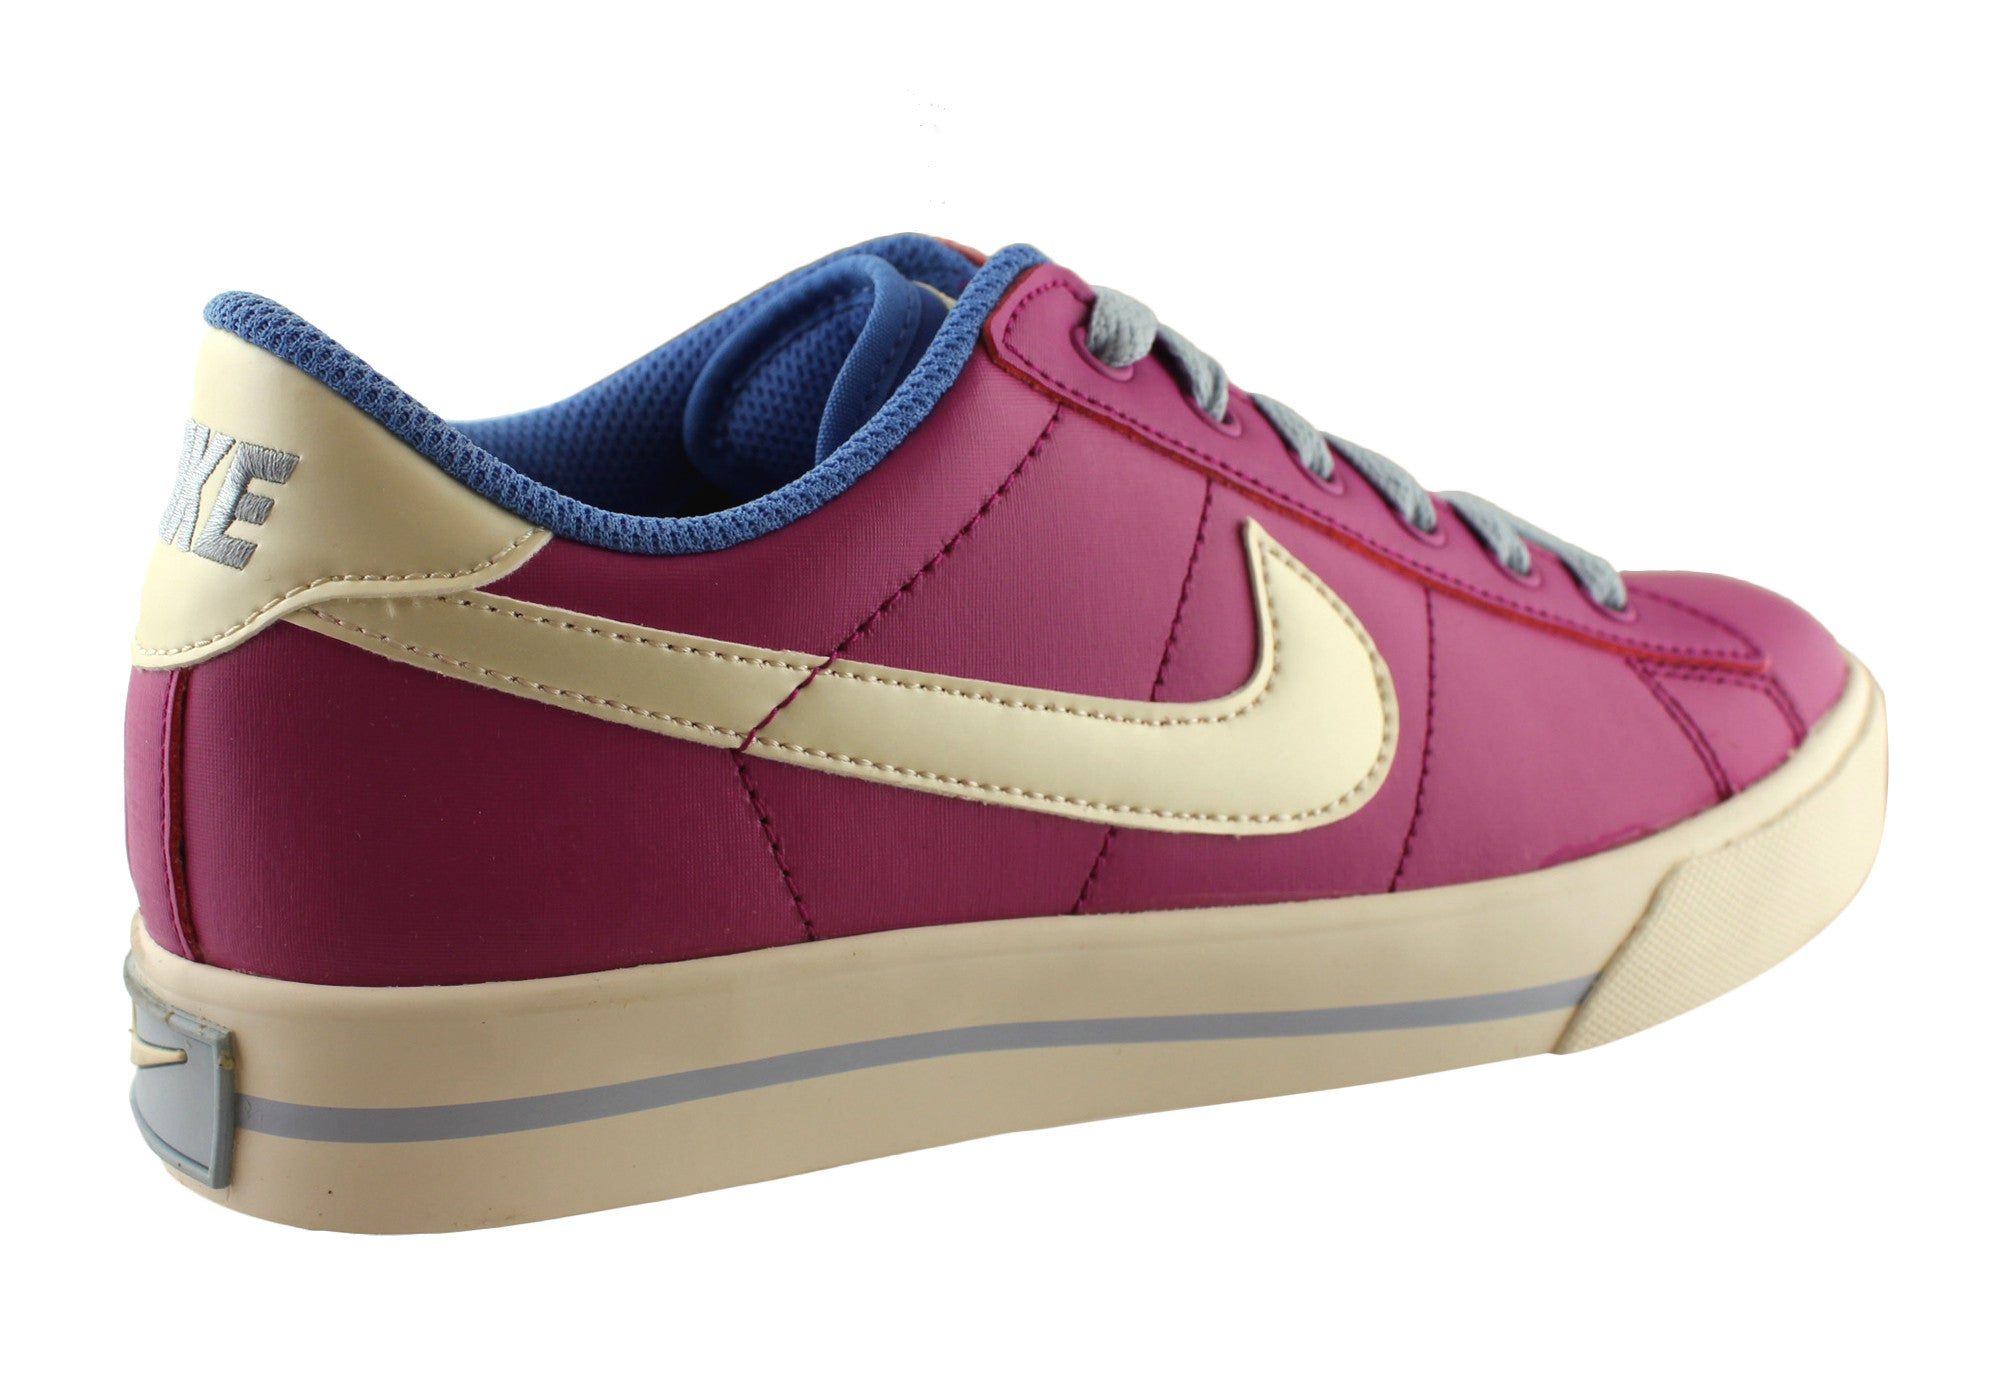 nike sweet classic leather womens casual shoes brand